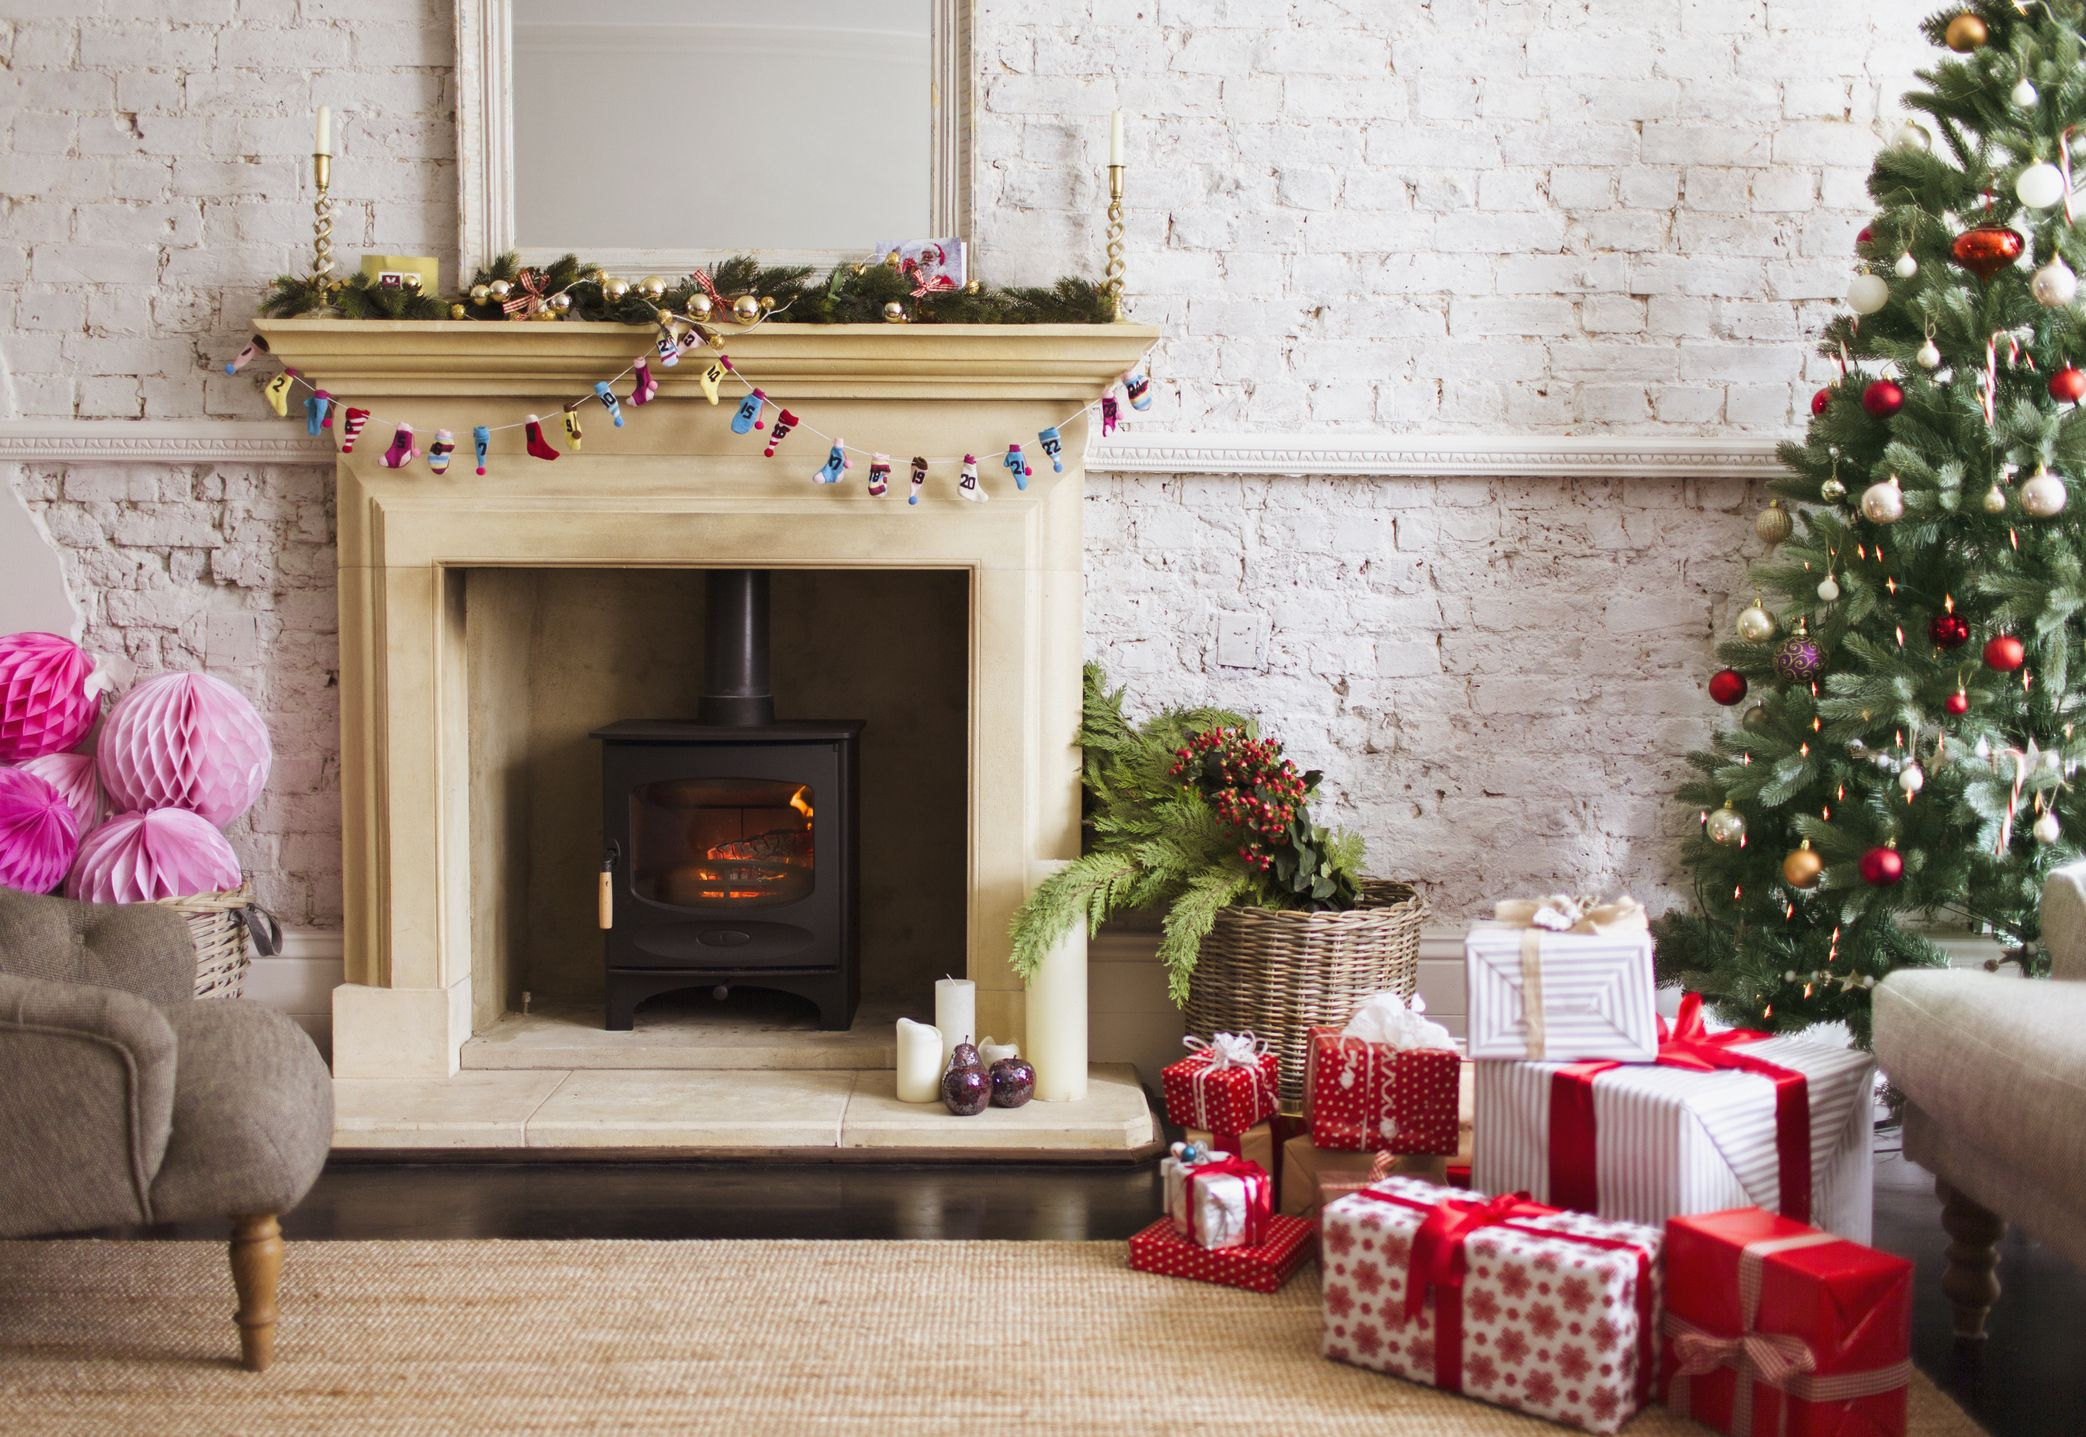 Decorations For Fireplaces 15 Christmas Mantel Decor Ideas Fireplace Holiday Decorations